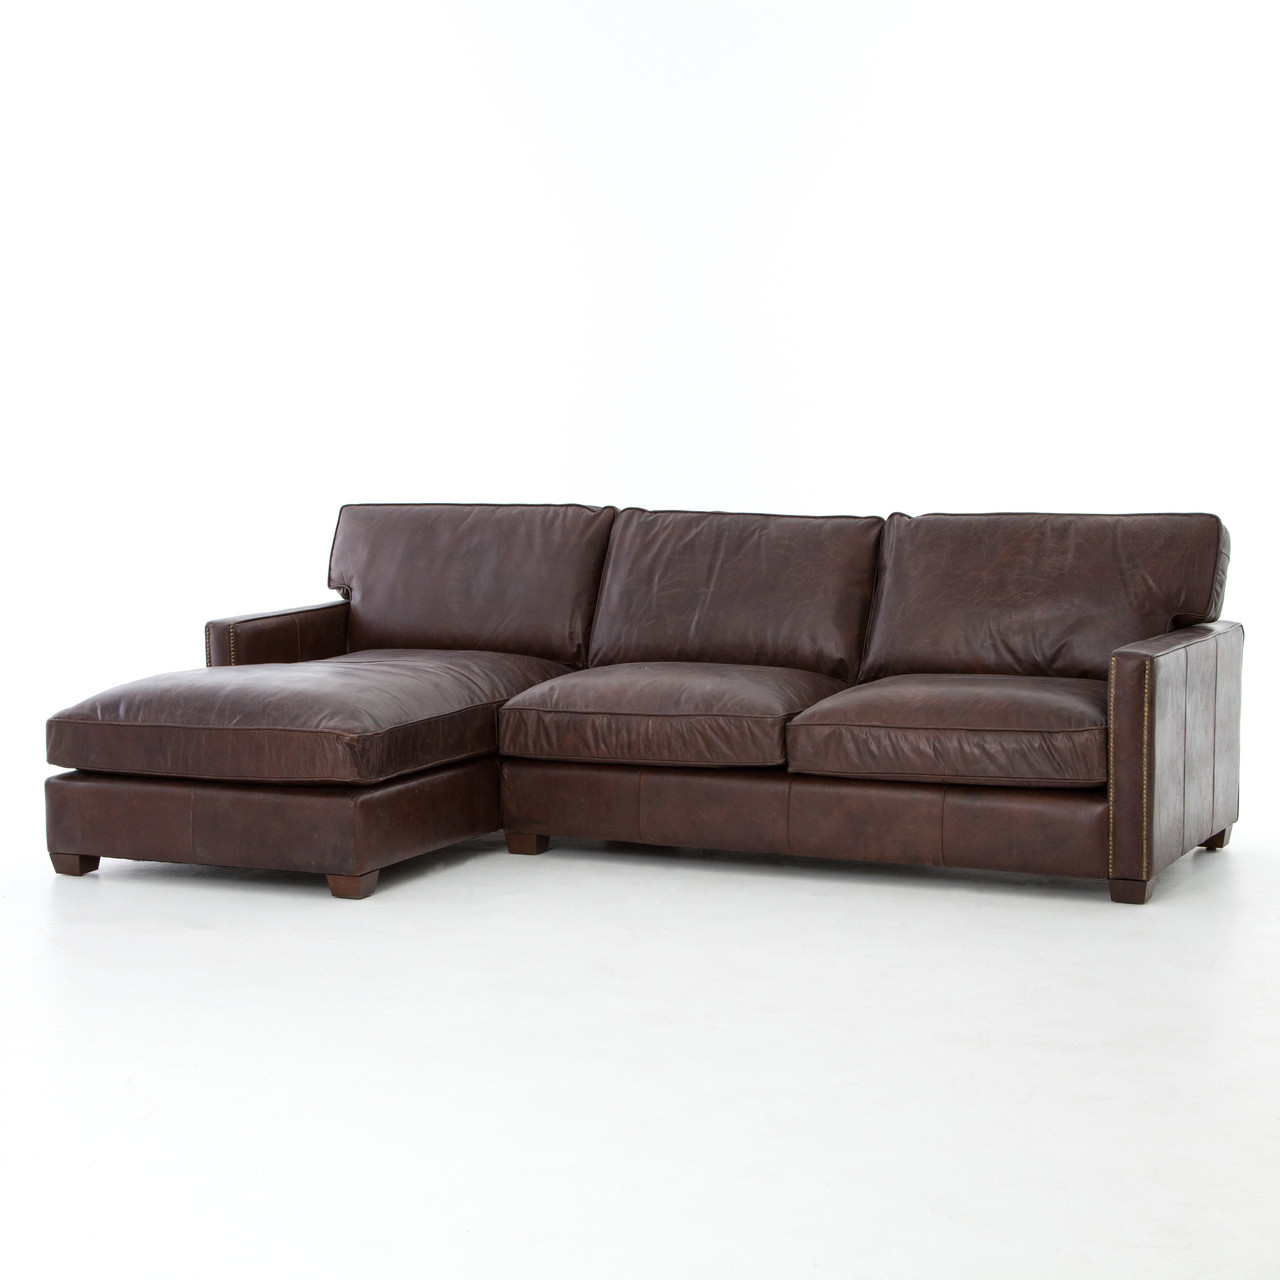 zin leather with sofa larkin cigar vintage sectional home distressed chaise